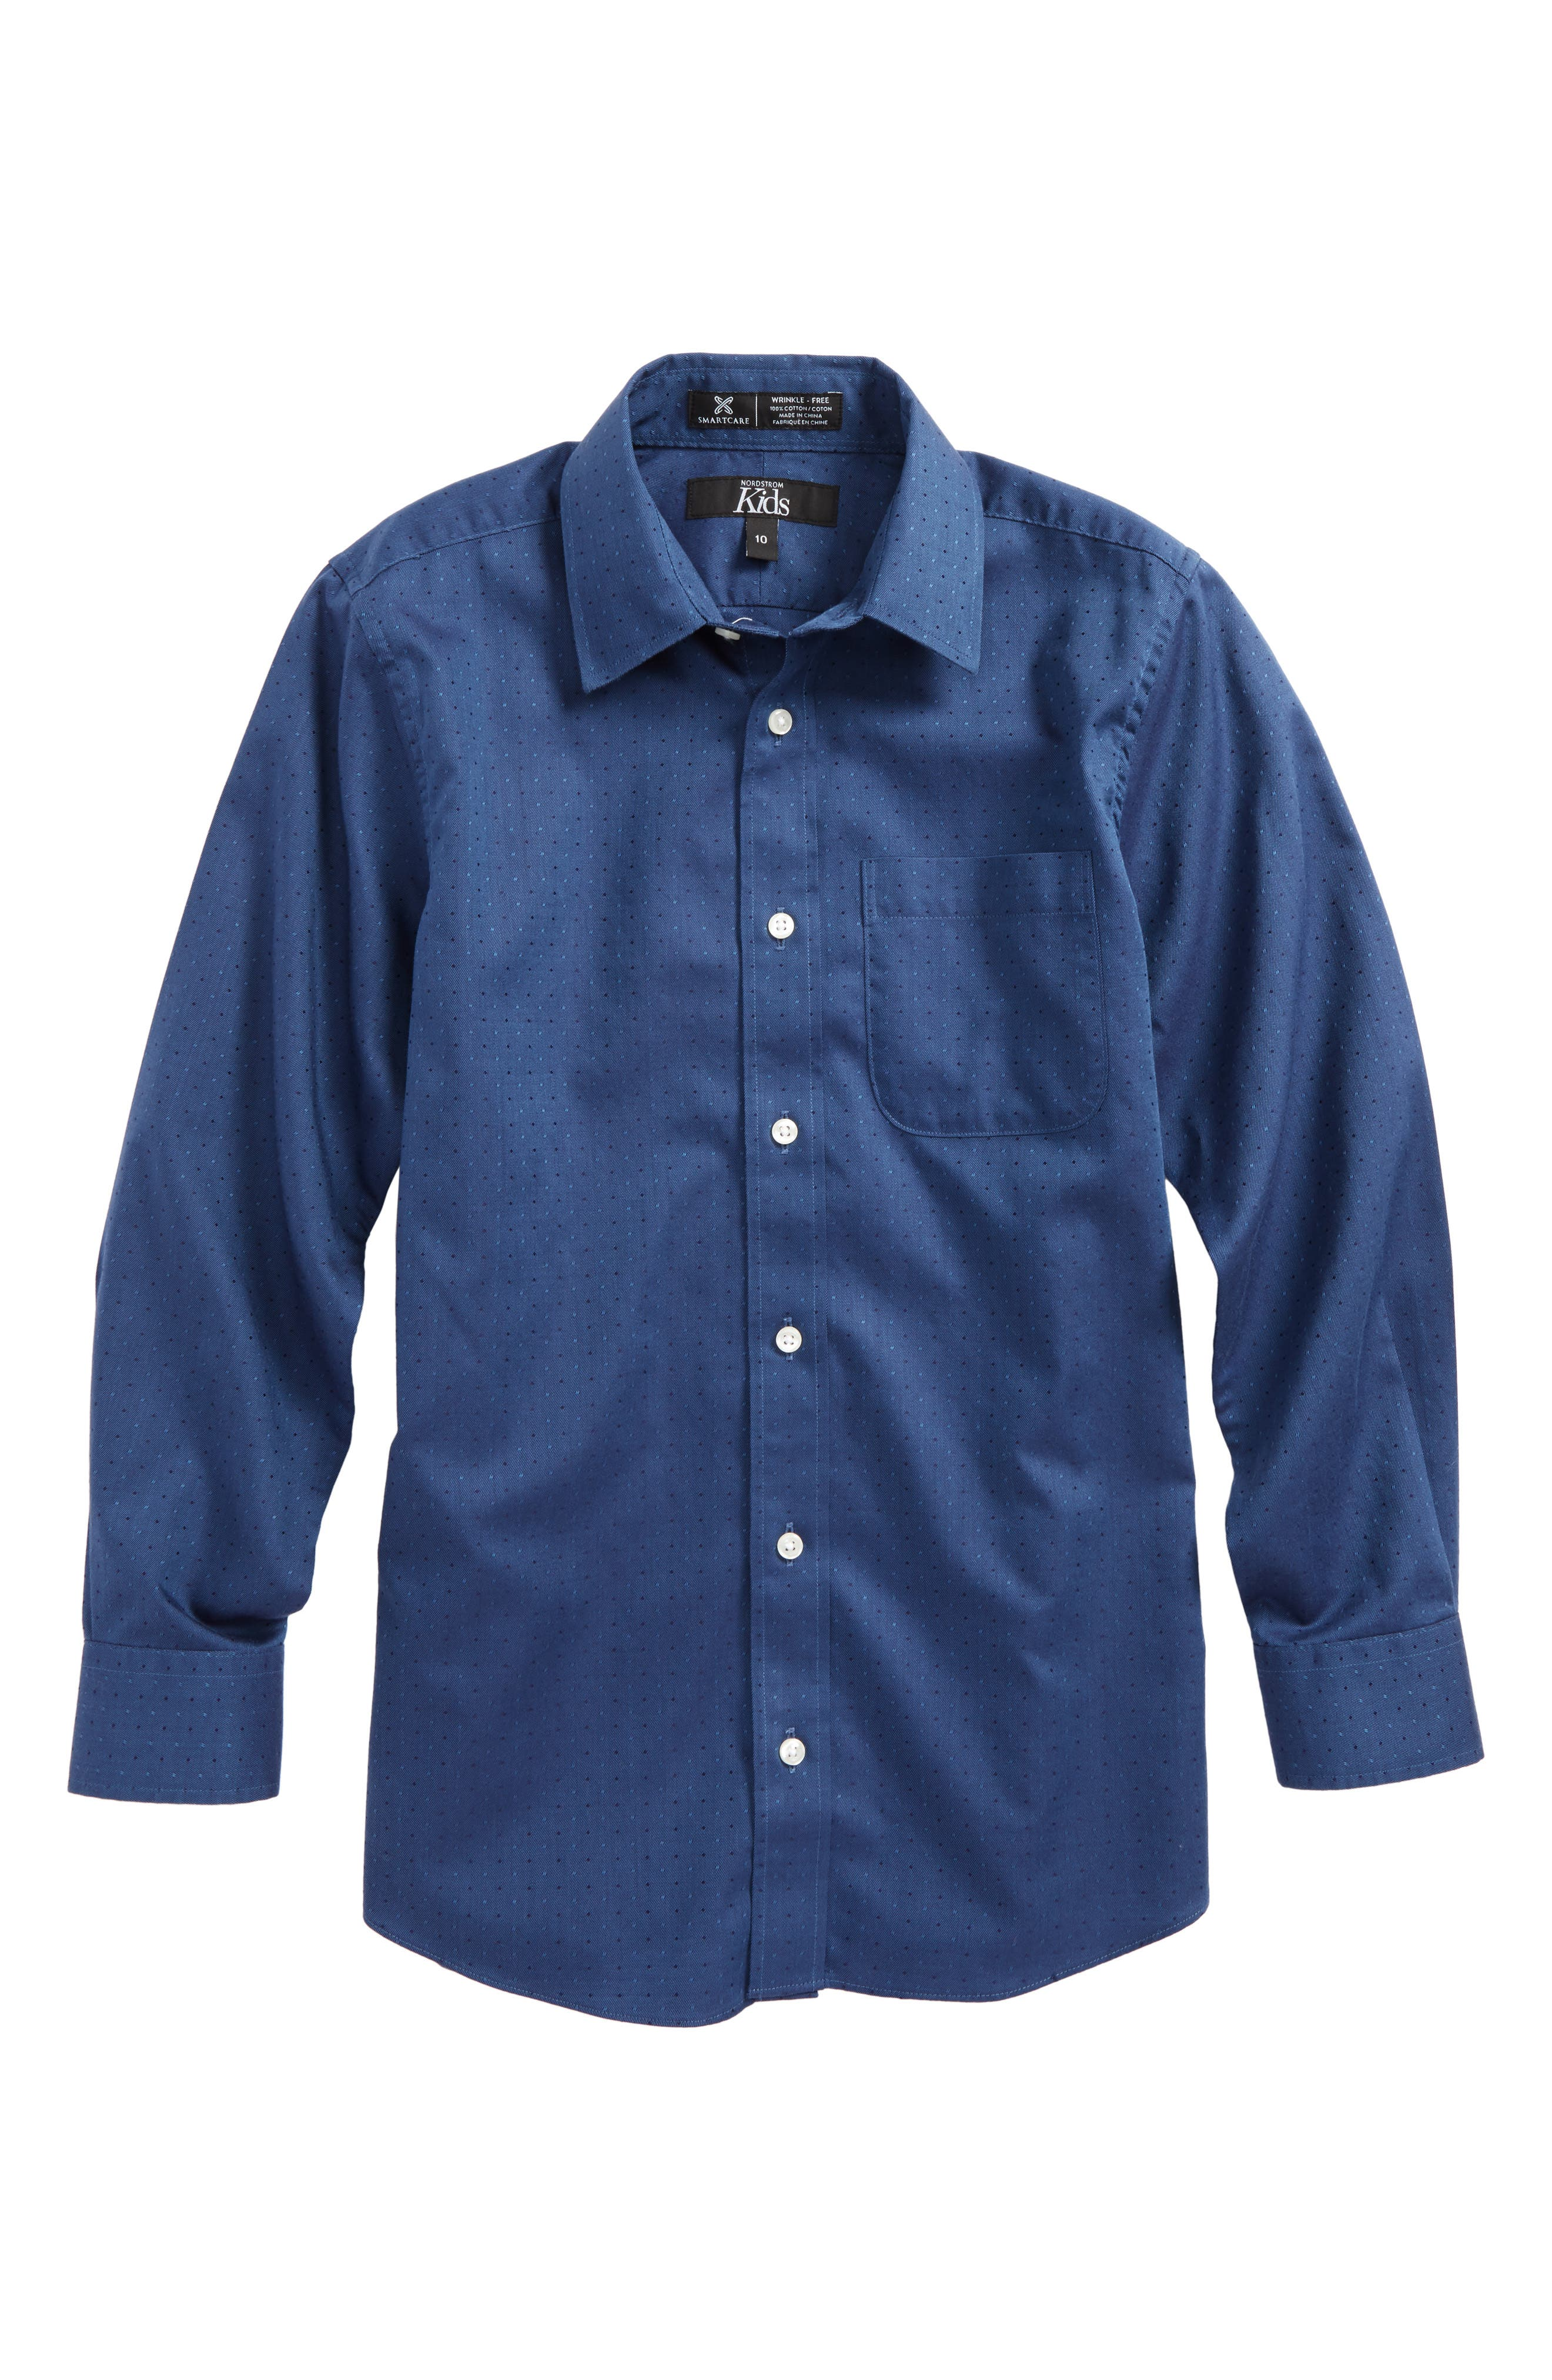 Dot Jacquard Sport Shirt,                         Main,                         color, Navy Denim Neat Dot